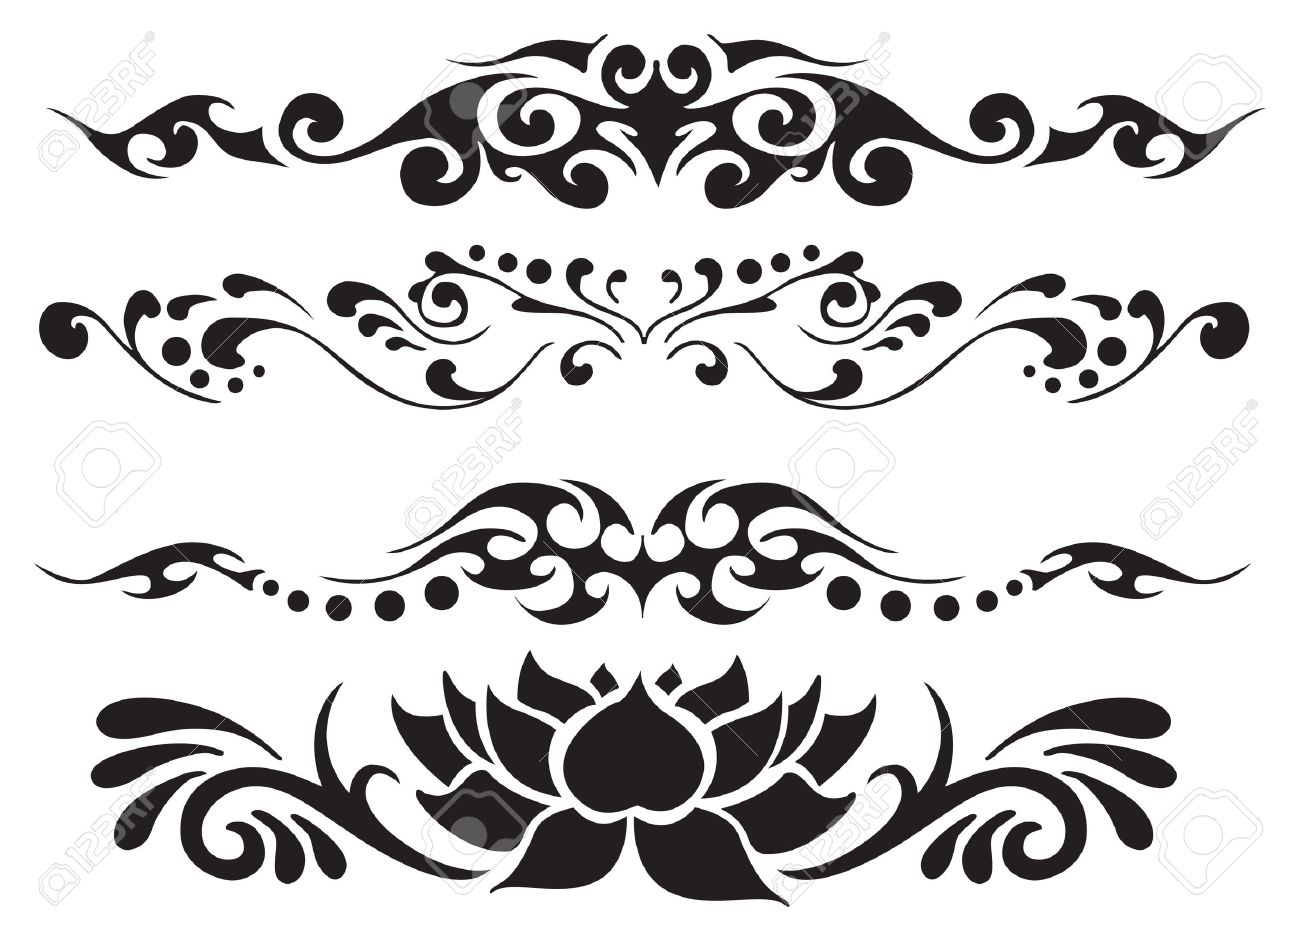 Floral Decoration vector decoration floral ornament royalty free cliparts, vectors